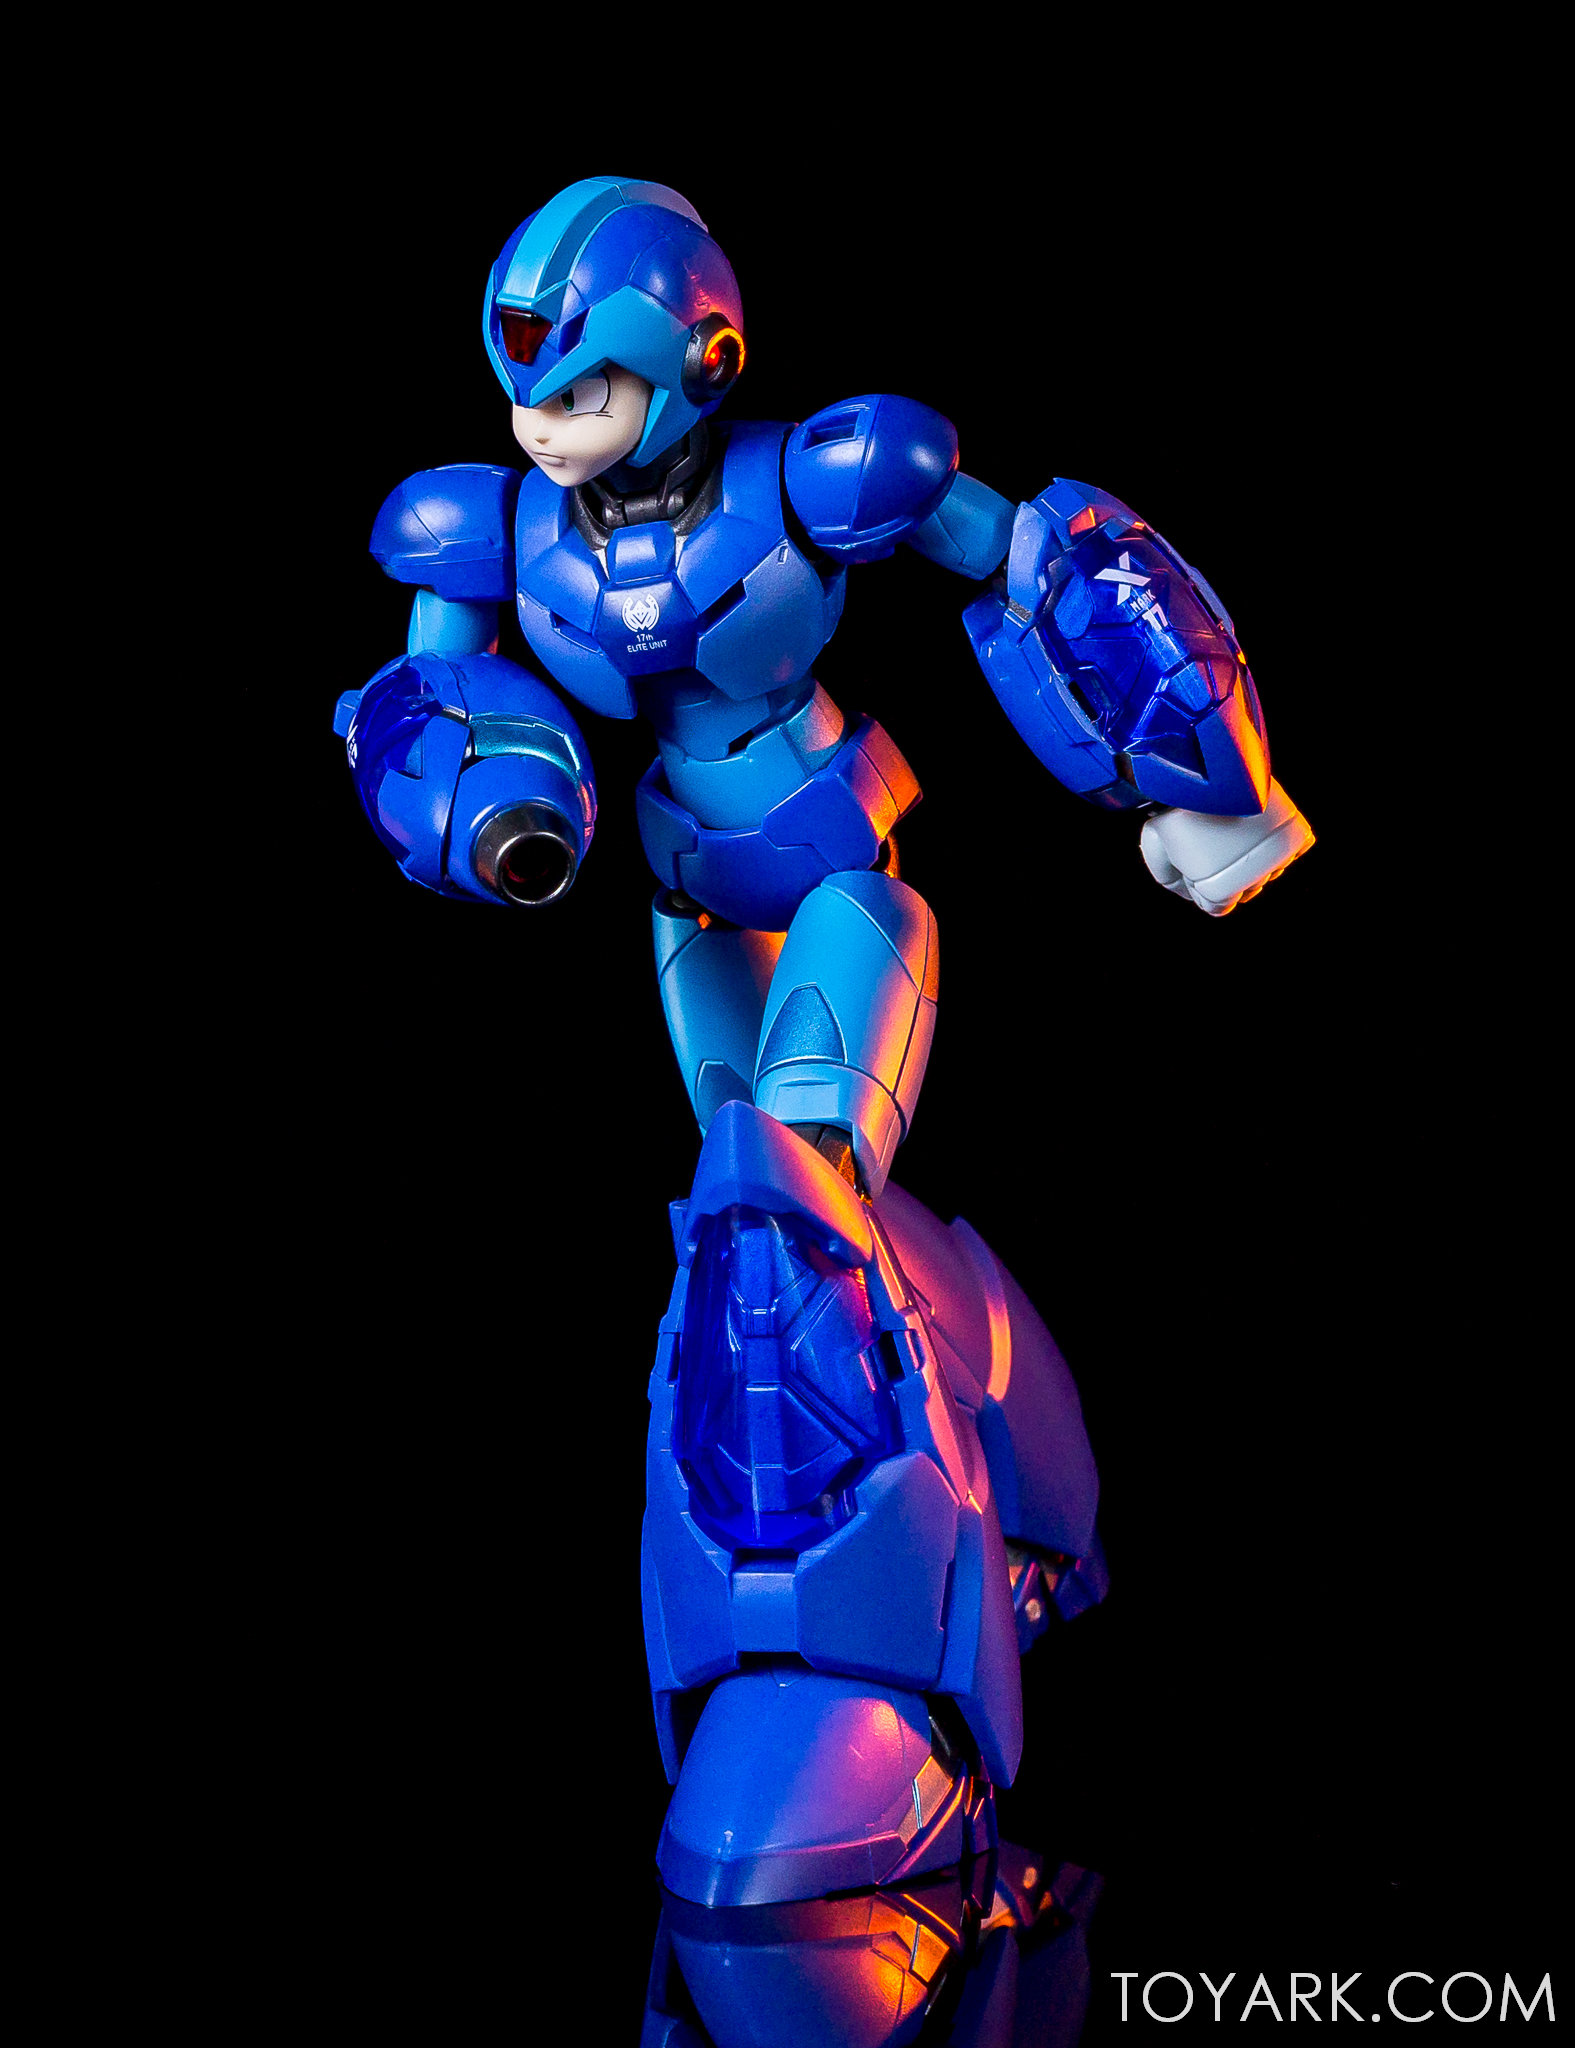 http://news.toyark.com/wp-content/uploads/sites/4/2018/01/Mega-Man-X-Giga-Armor-00014.jpg